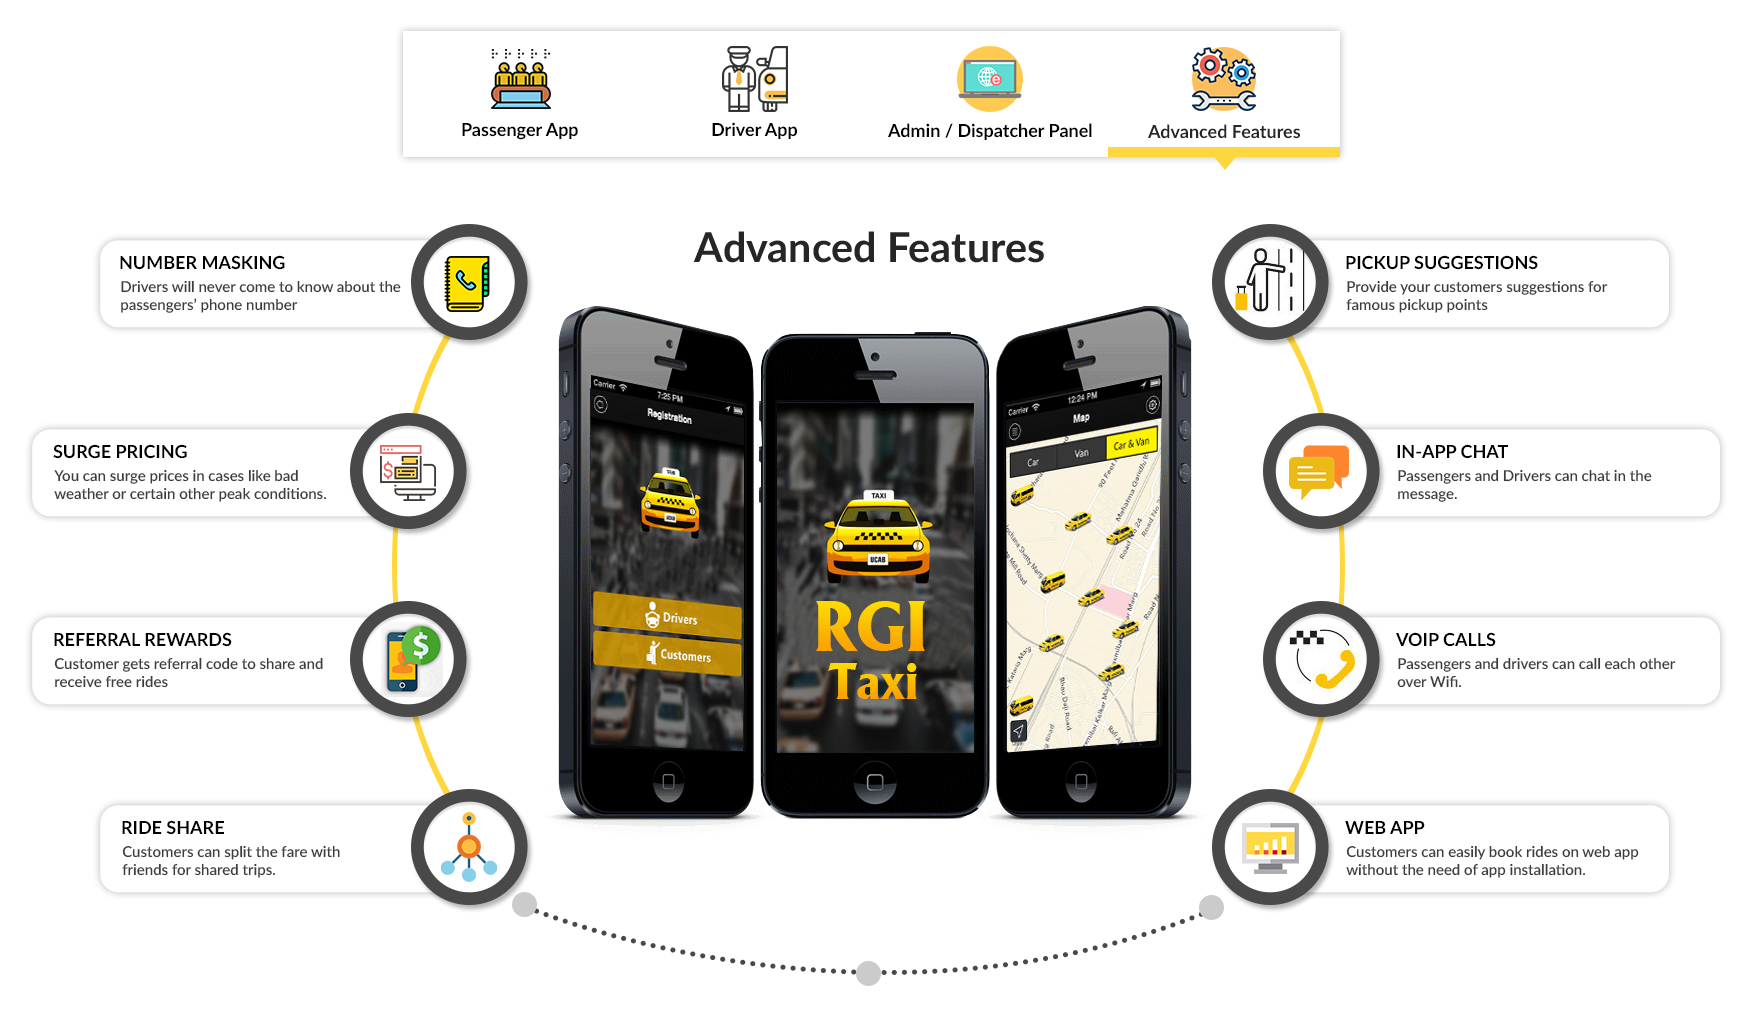 RGI Taxi - On demand taxi booking app solution like Uber & - UpLabs